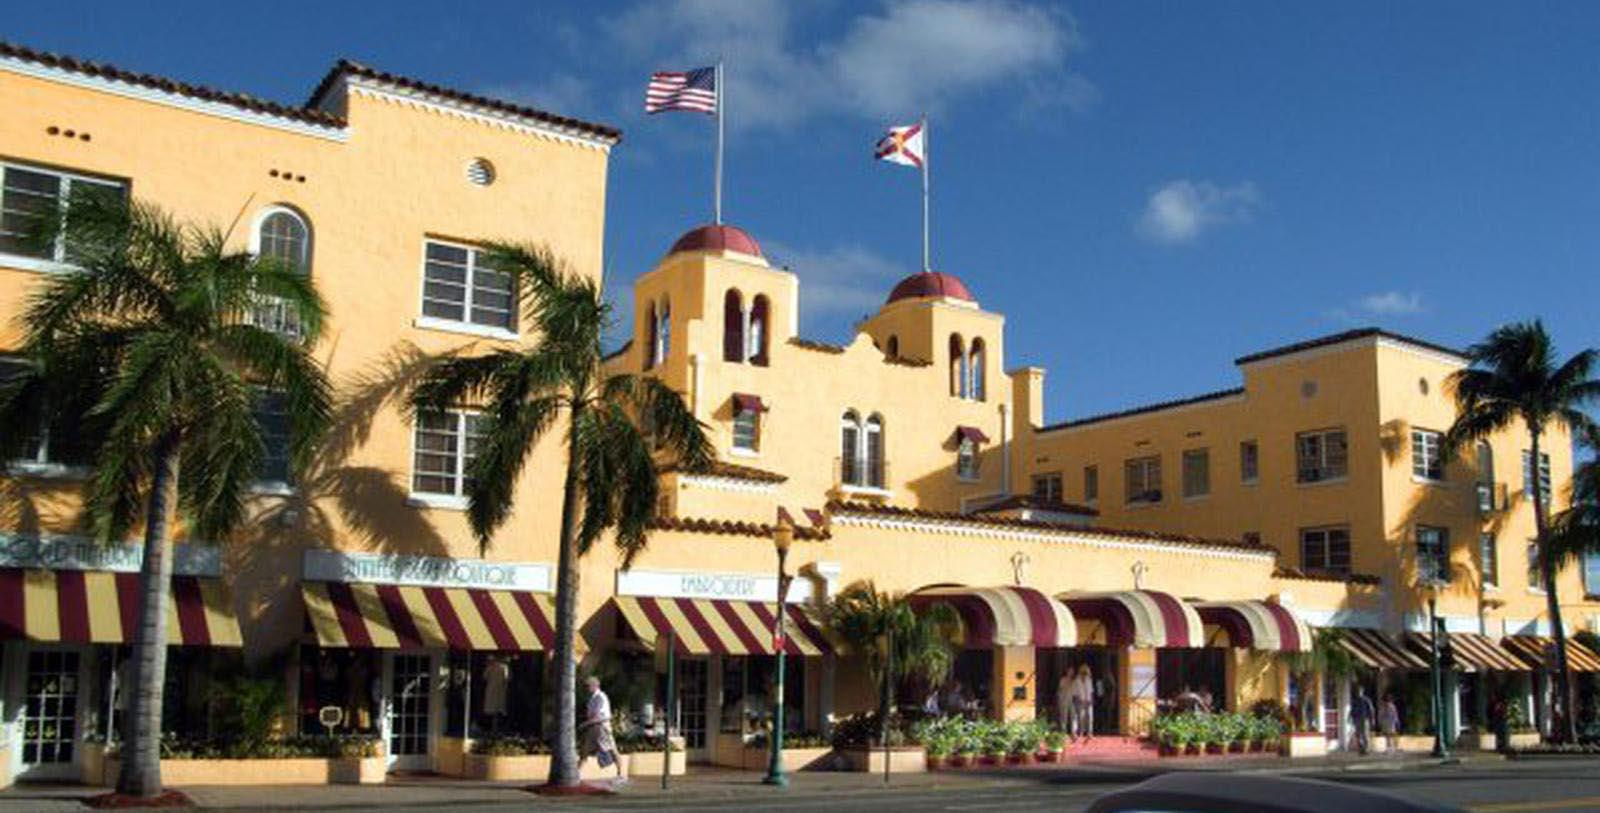 Image of Hotel Exterior at Colony Hotel & Cabana Club, 1926, Member of Historic Hotels of America, in Delray Beach, Florida, Special Offers, Discounted Rates, Families, Romantic Escape, Honeymoons, Anniversaries, Reunions